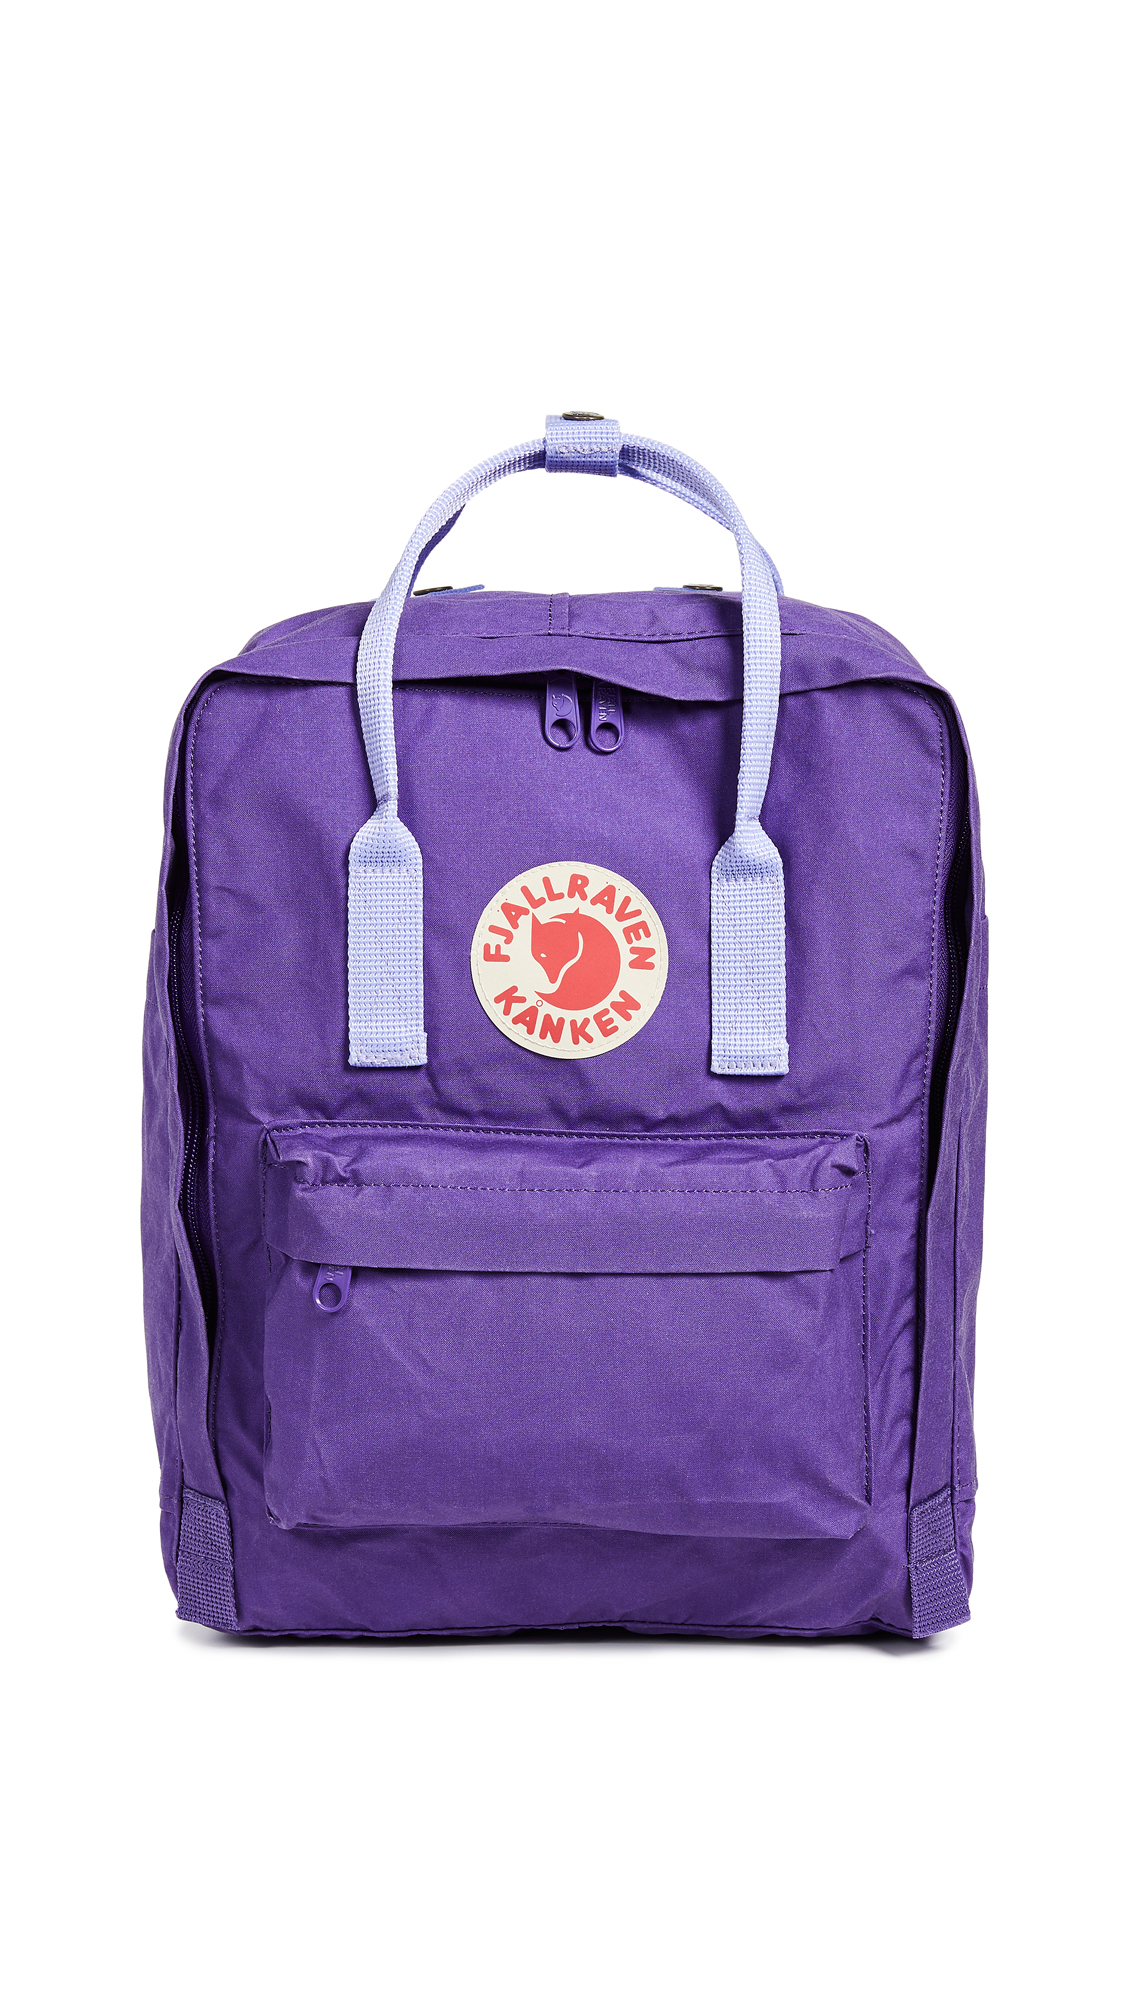 FJALL RAVEN Kanken Backpack in Purple/Violet